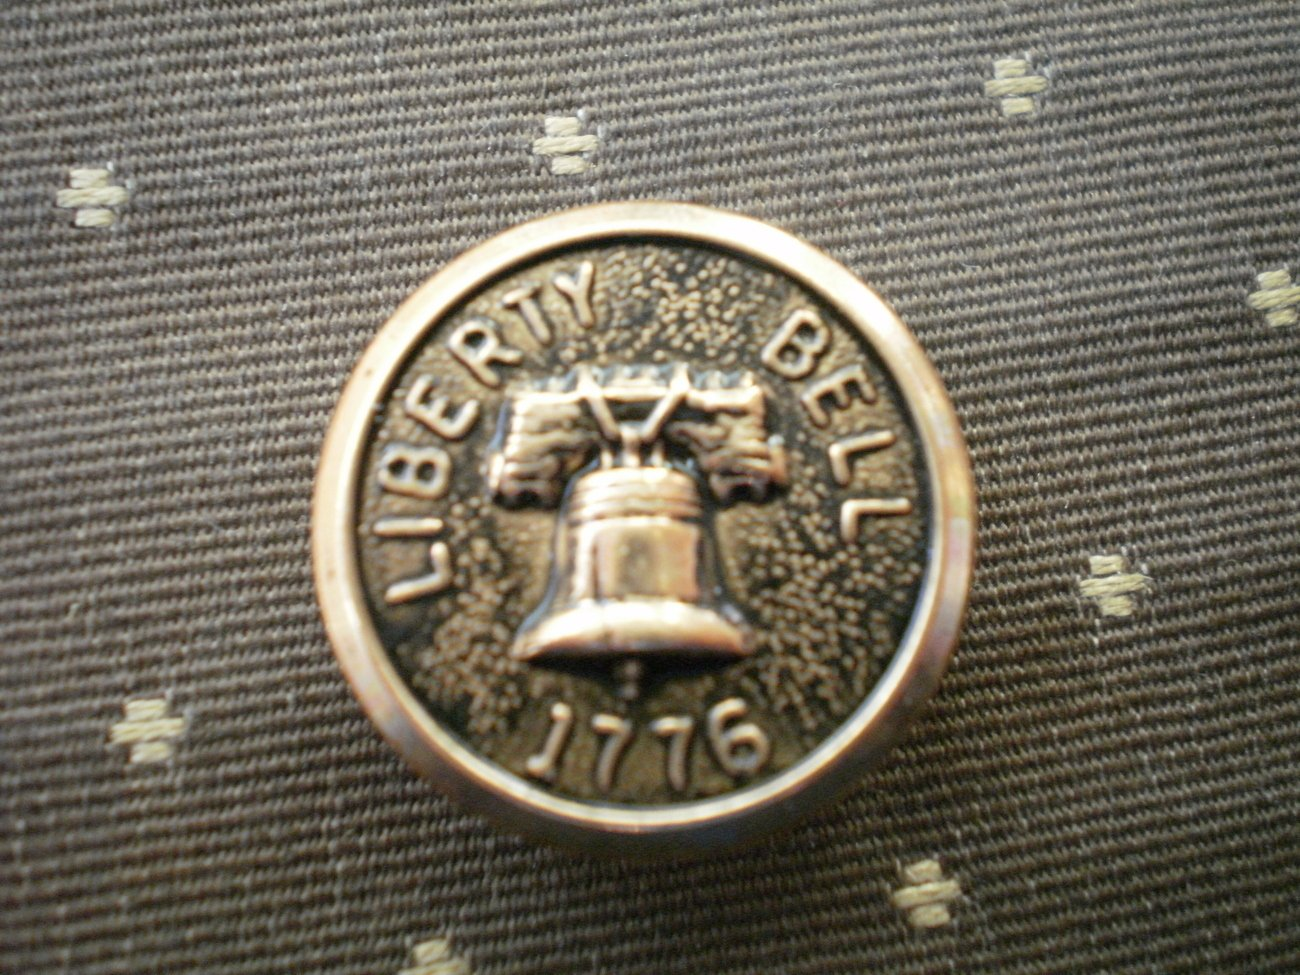 Liberty Bell 1776 Metal Button Self Shank Gold Black 6/8in Lot 2